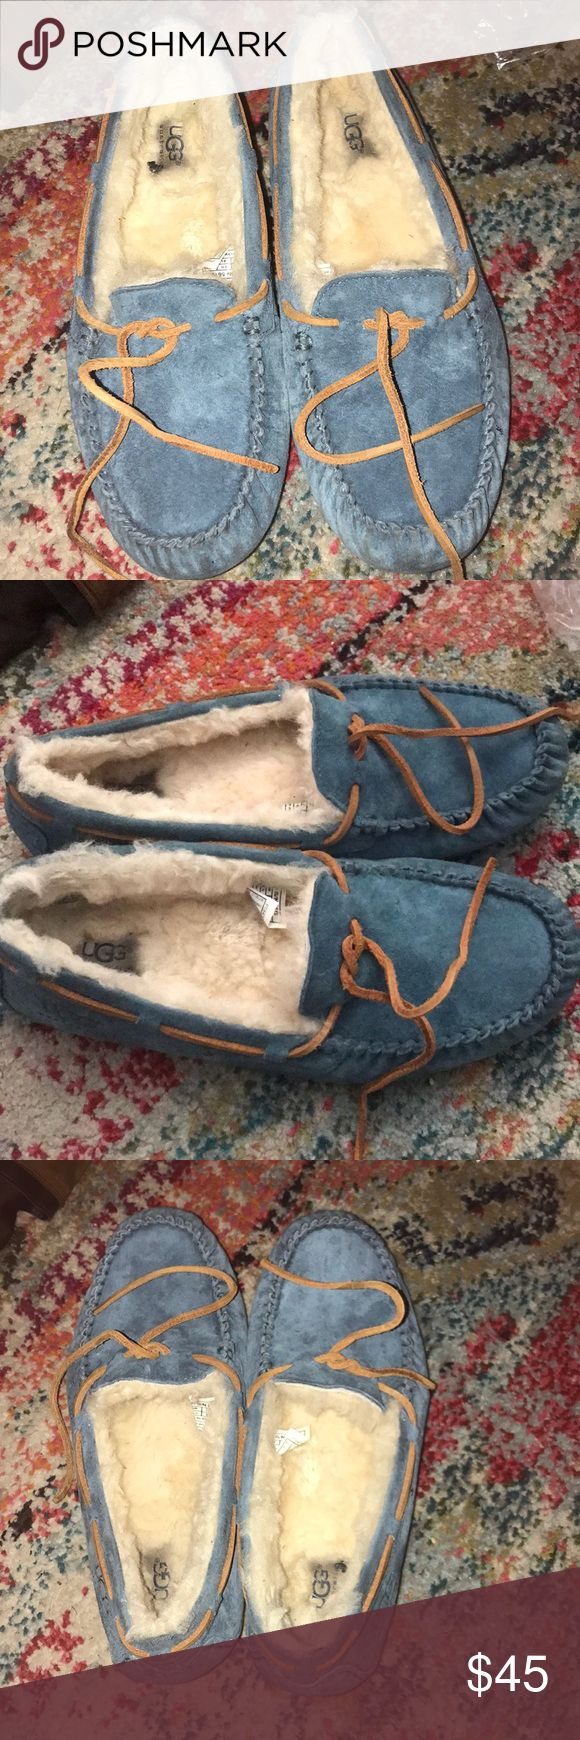 UGG sheepskin slippers in a steal color size 8.5 Nice UGG sheepskin slippers size 8.5 and the color is teal or turquoise. Great slippers especially for this cold winter and they see do Comfy. UGG Accessories